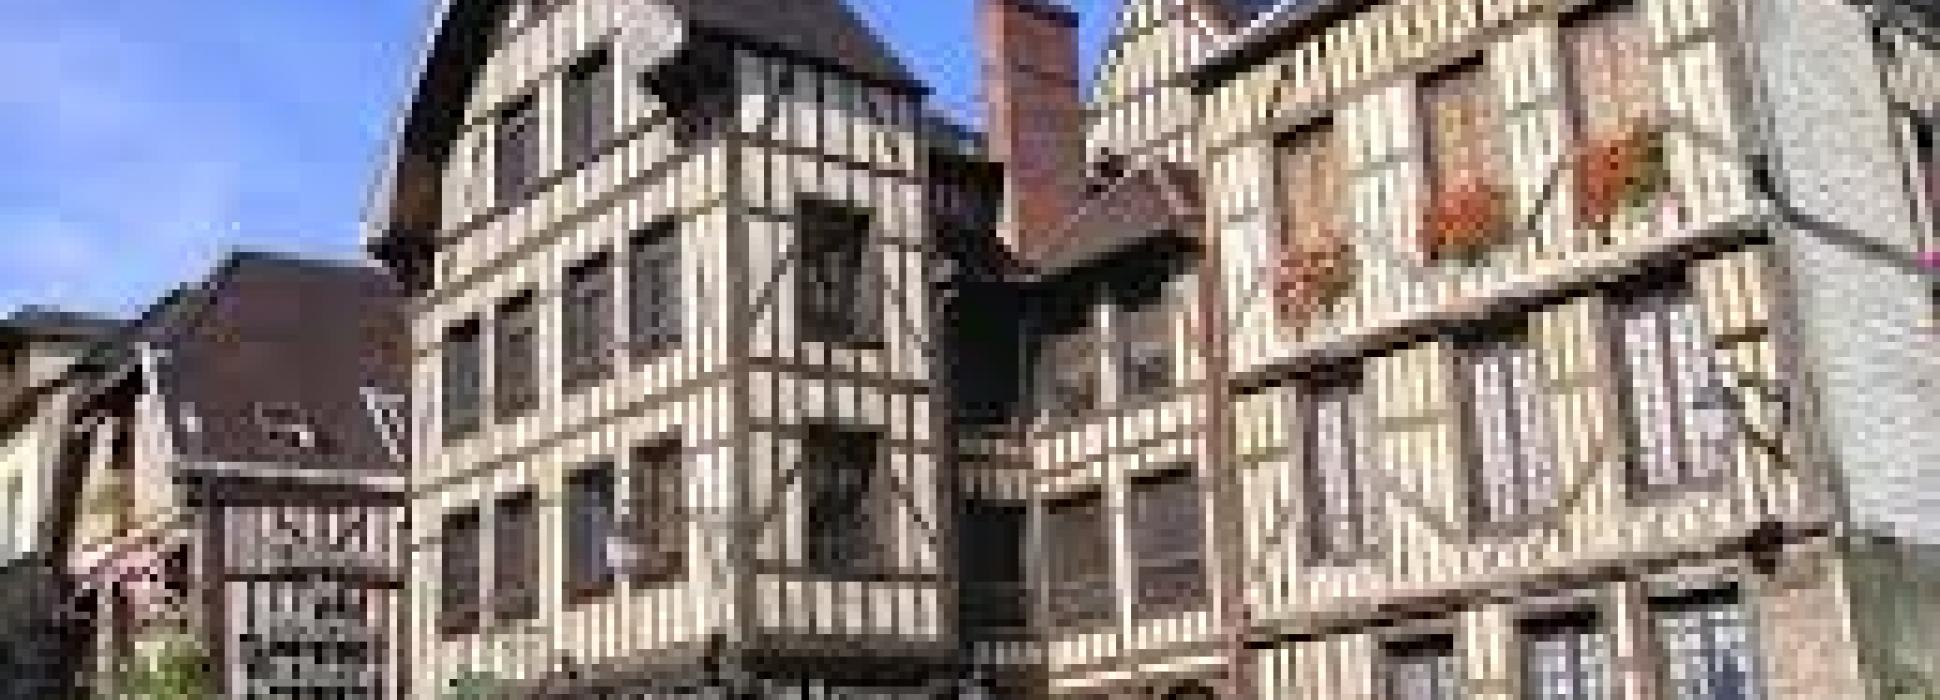 The 2019/2020 l'Etudiant ranking of places Troyes in 28th position of the most attractive cities